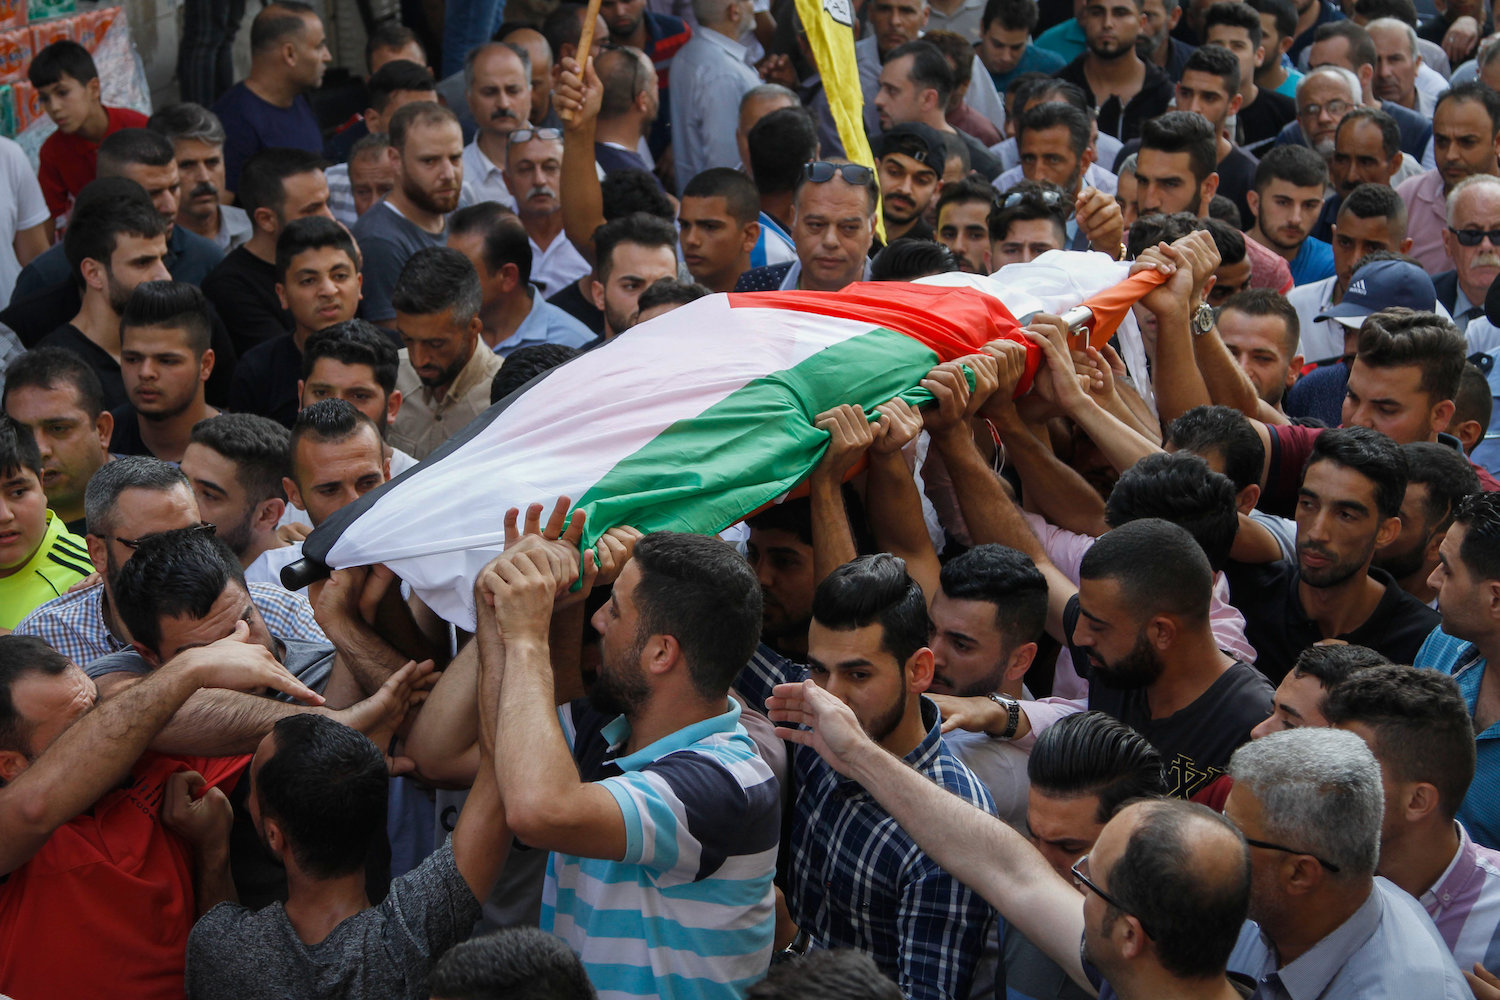 Palestinians carry the body of Aisha Rabi, who was killed by settlers while driving in the West Bank, during her funeral in the West Bank village of Bidya, October 13, 2018. (Nasser Ishtayeh/Flash90)